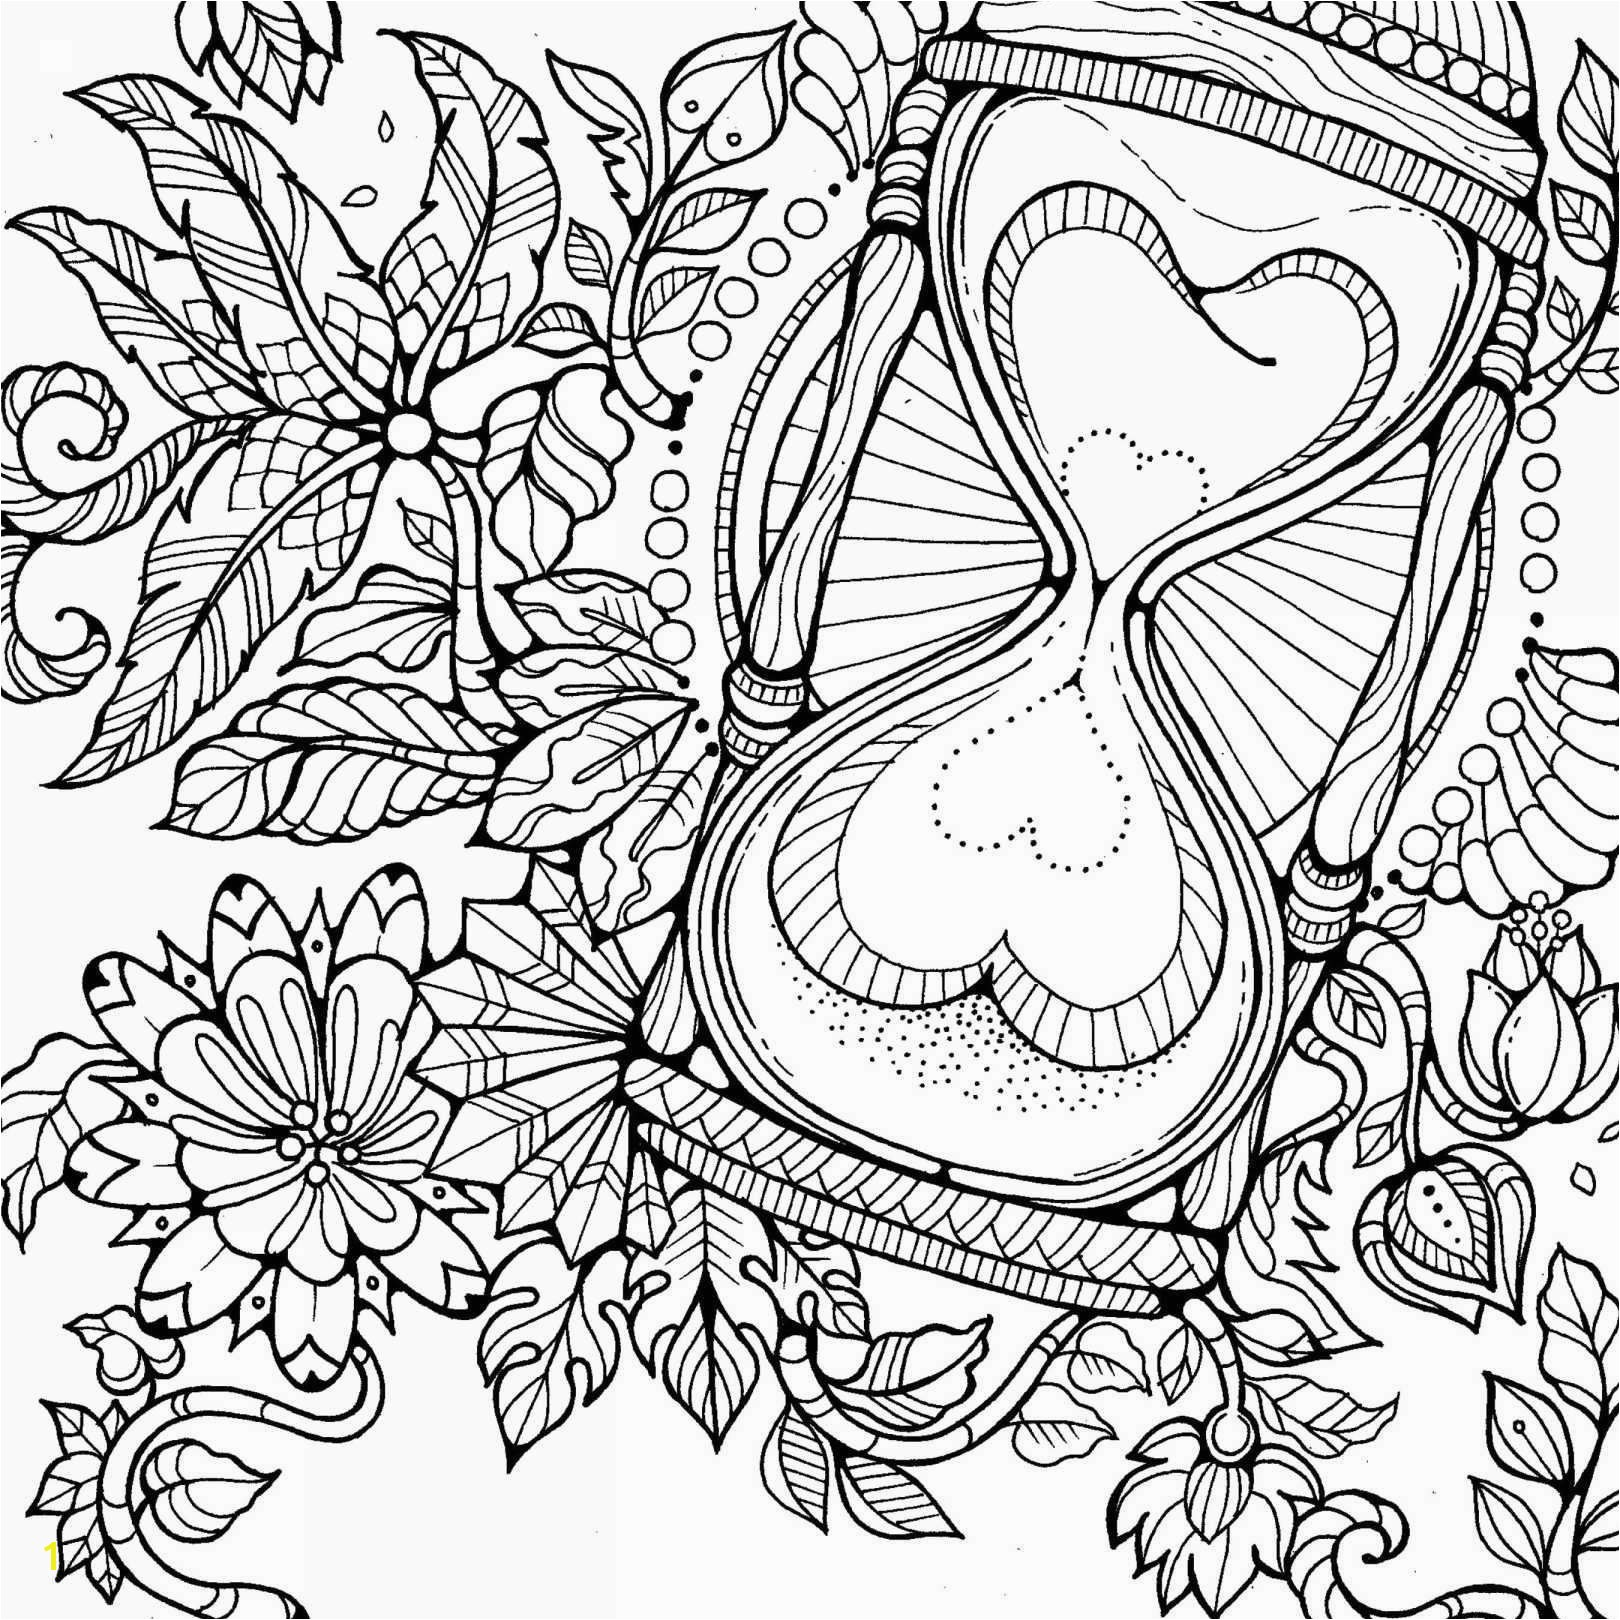 Coloring Pages Printable Inspirational Pages to Color New Color Page Luxury Multiplication Printables 0d Christmas